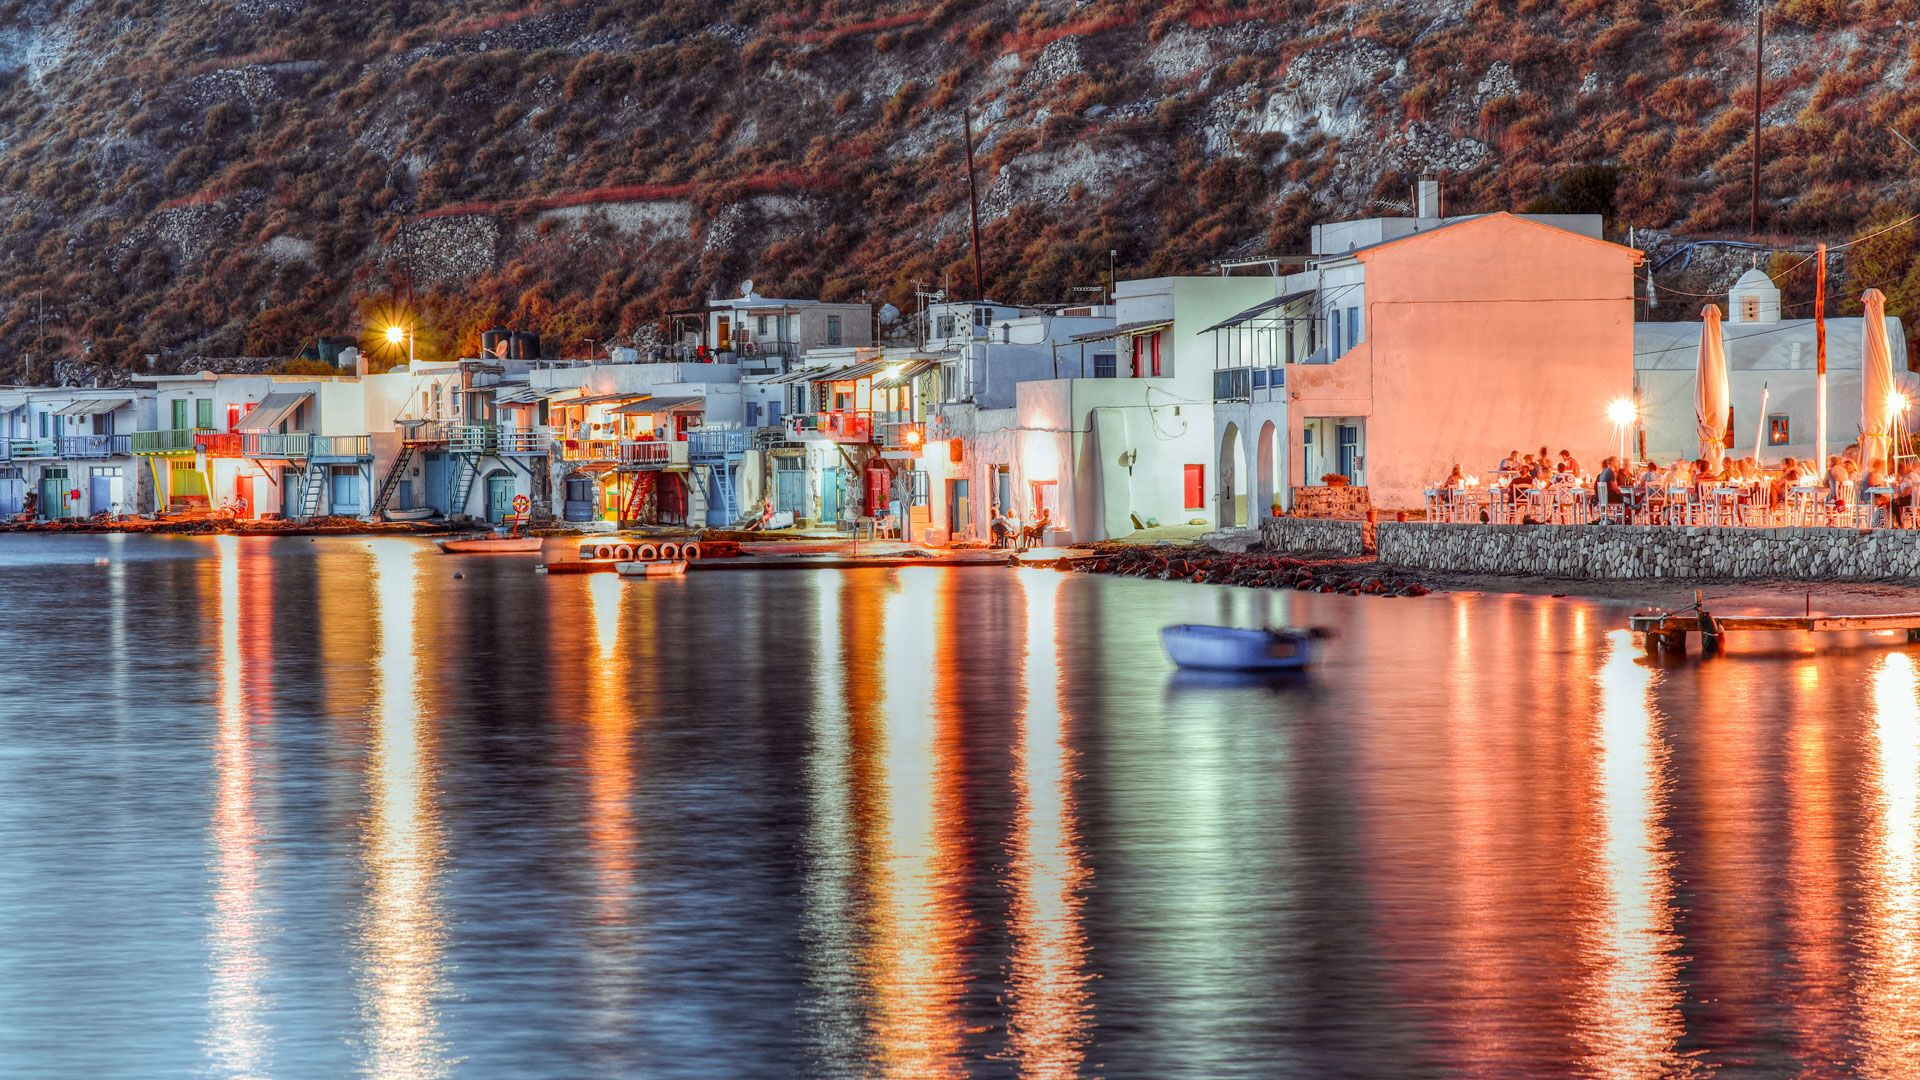 Colourful fishermen's boat houses at night, Klima village, Milos